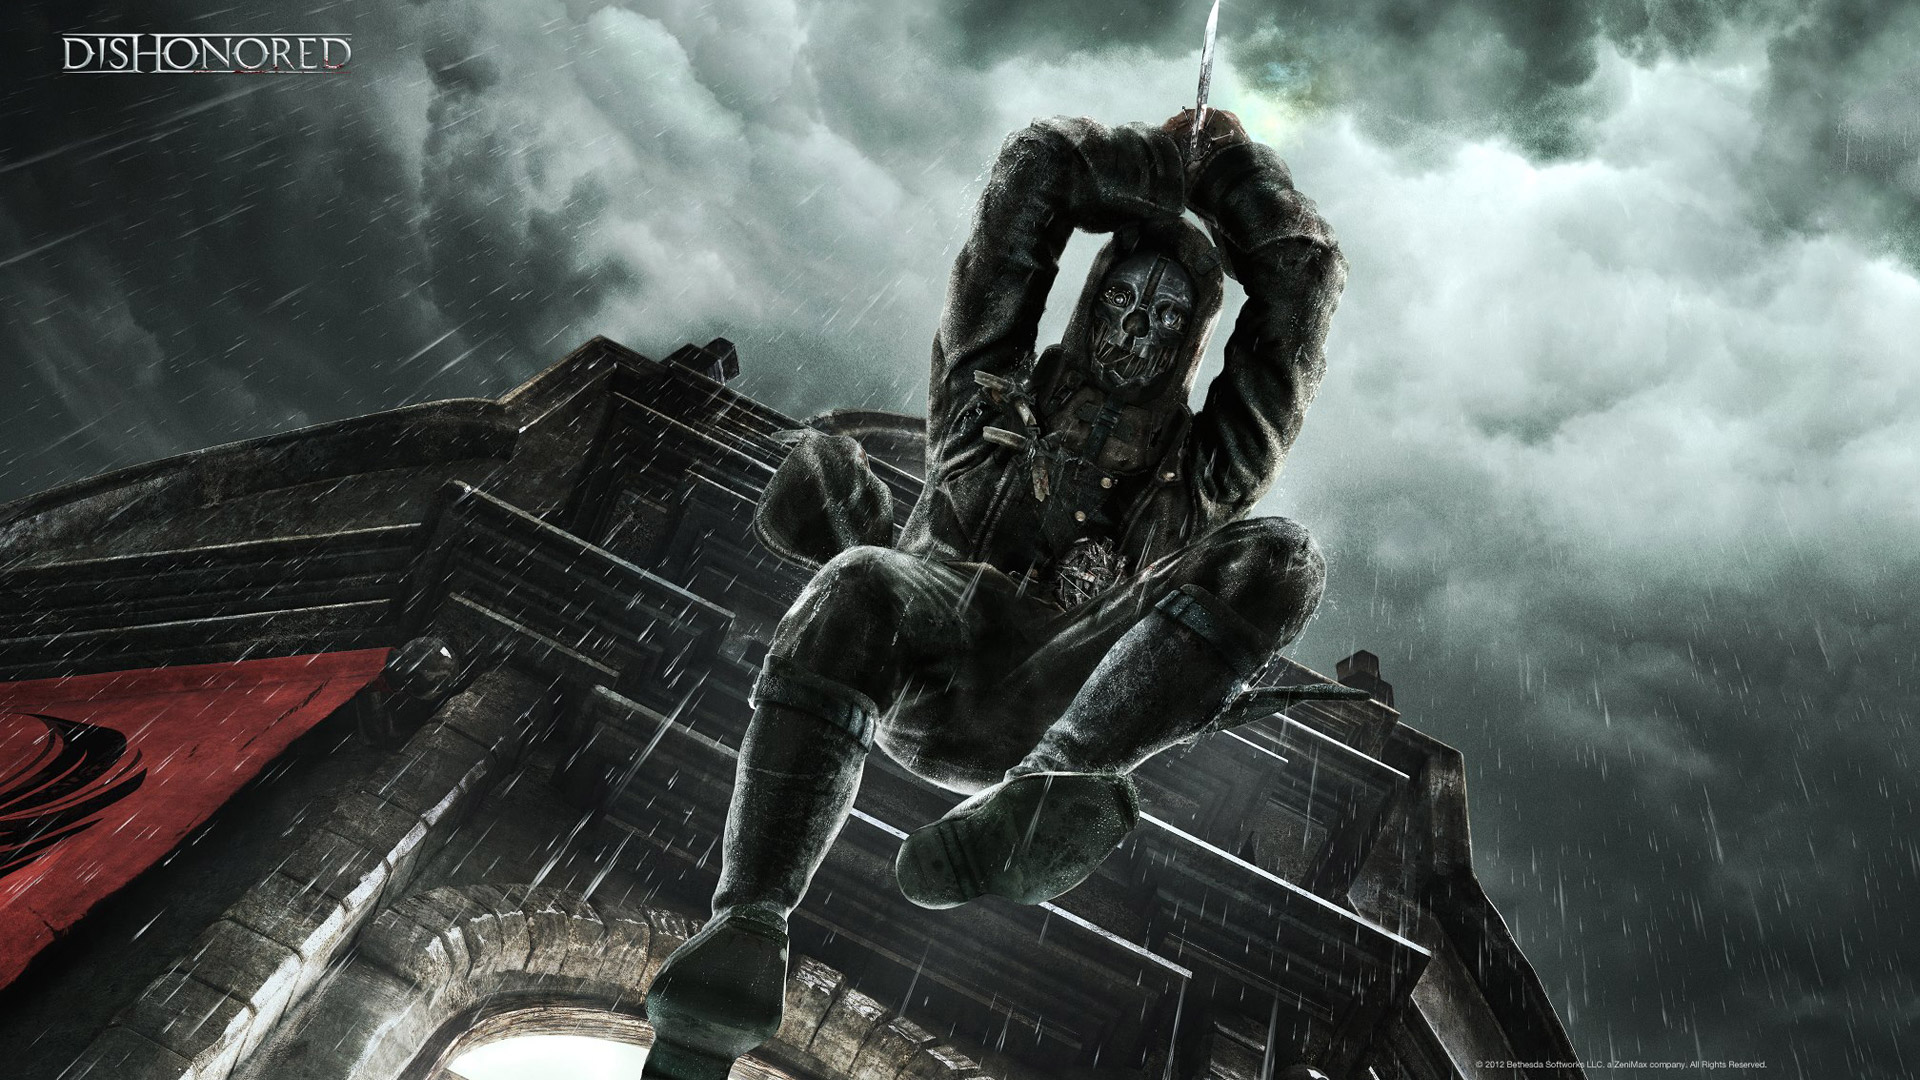 Dishonored Wallpaper 4